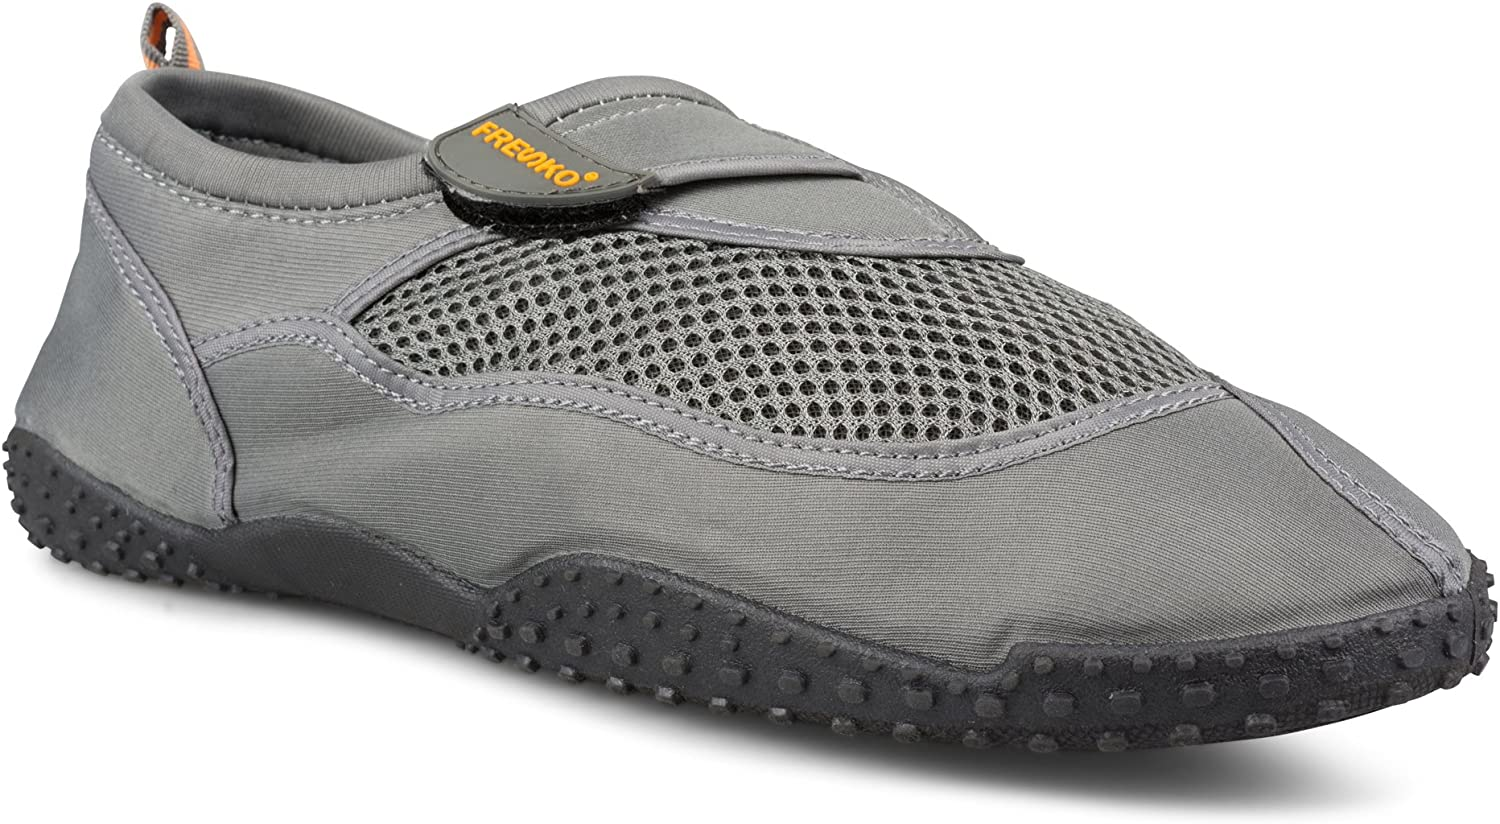 Fresko shoes Large Mens Athletic Water Swim shoes for Beach, Closure